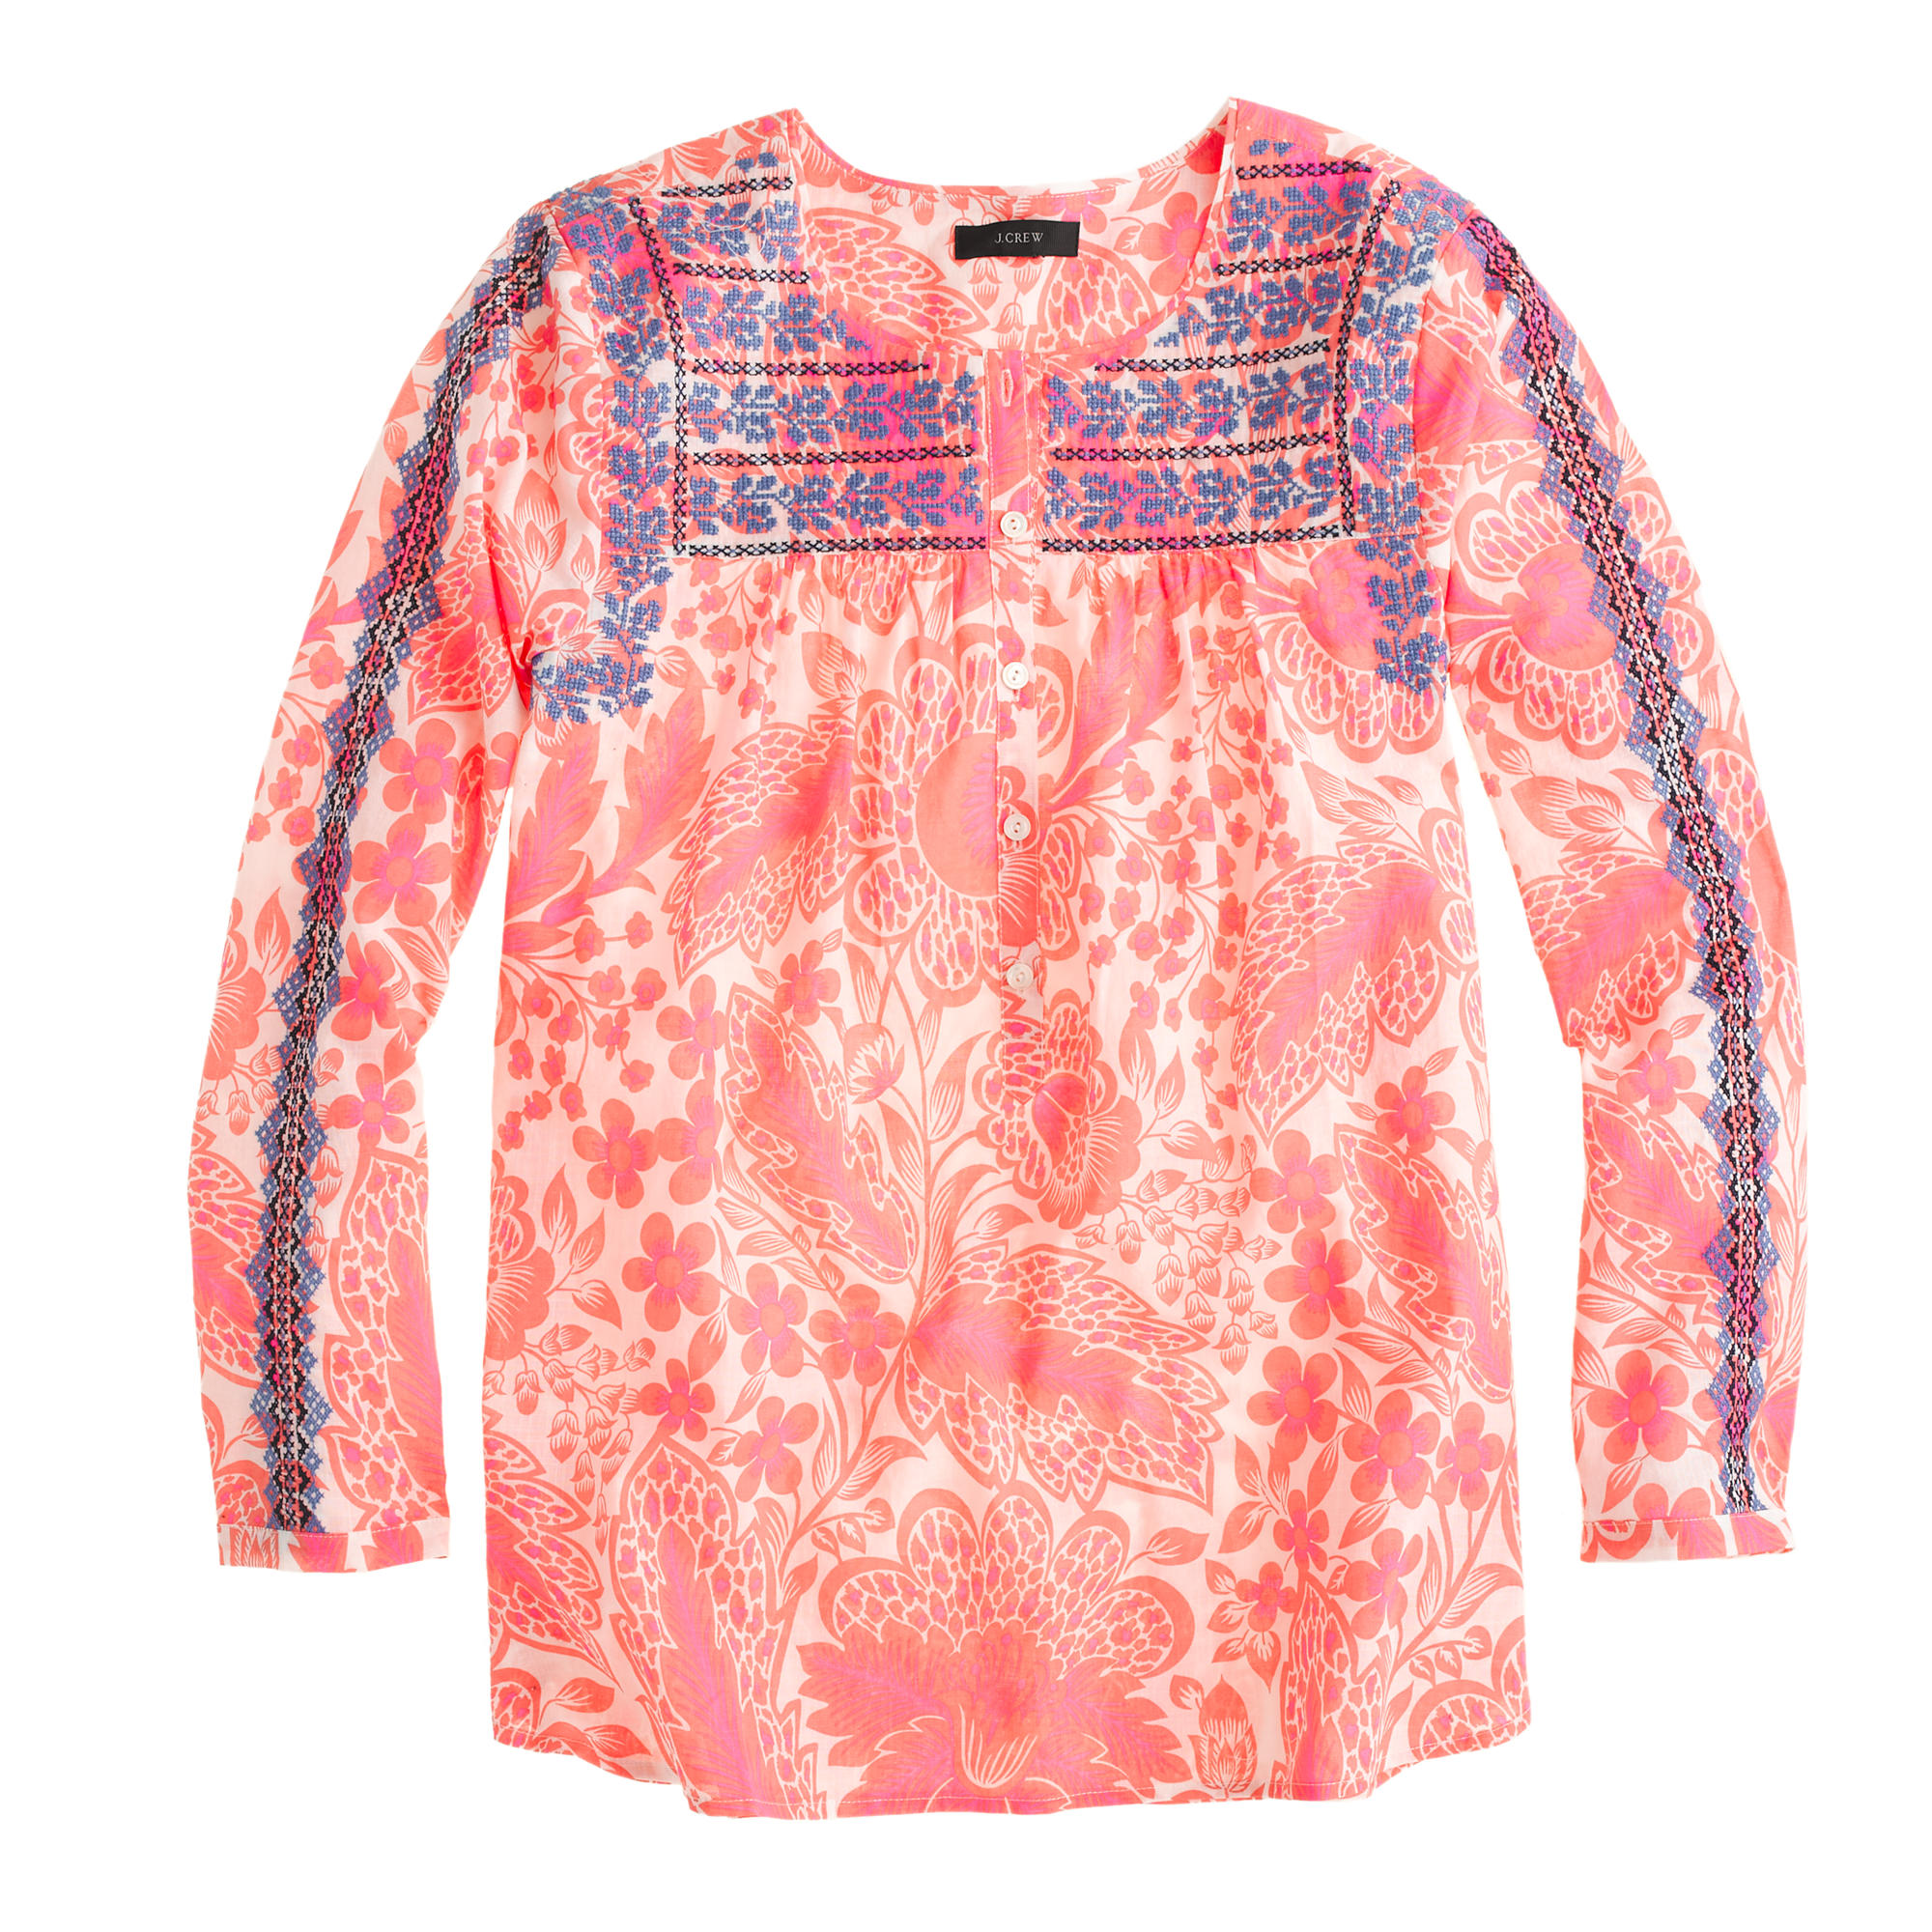 Pink floral embroidered top :